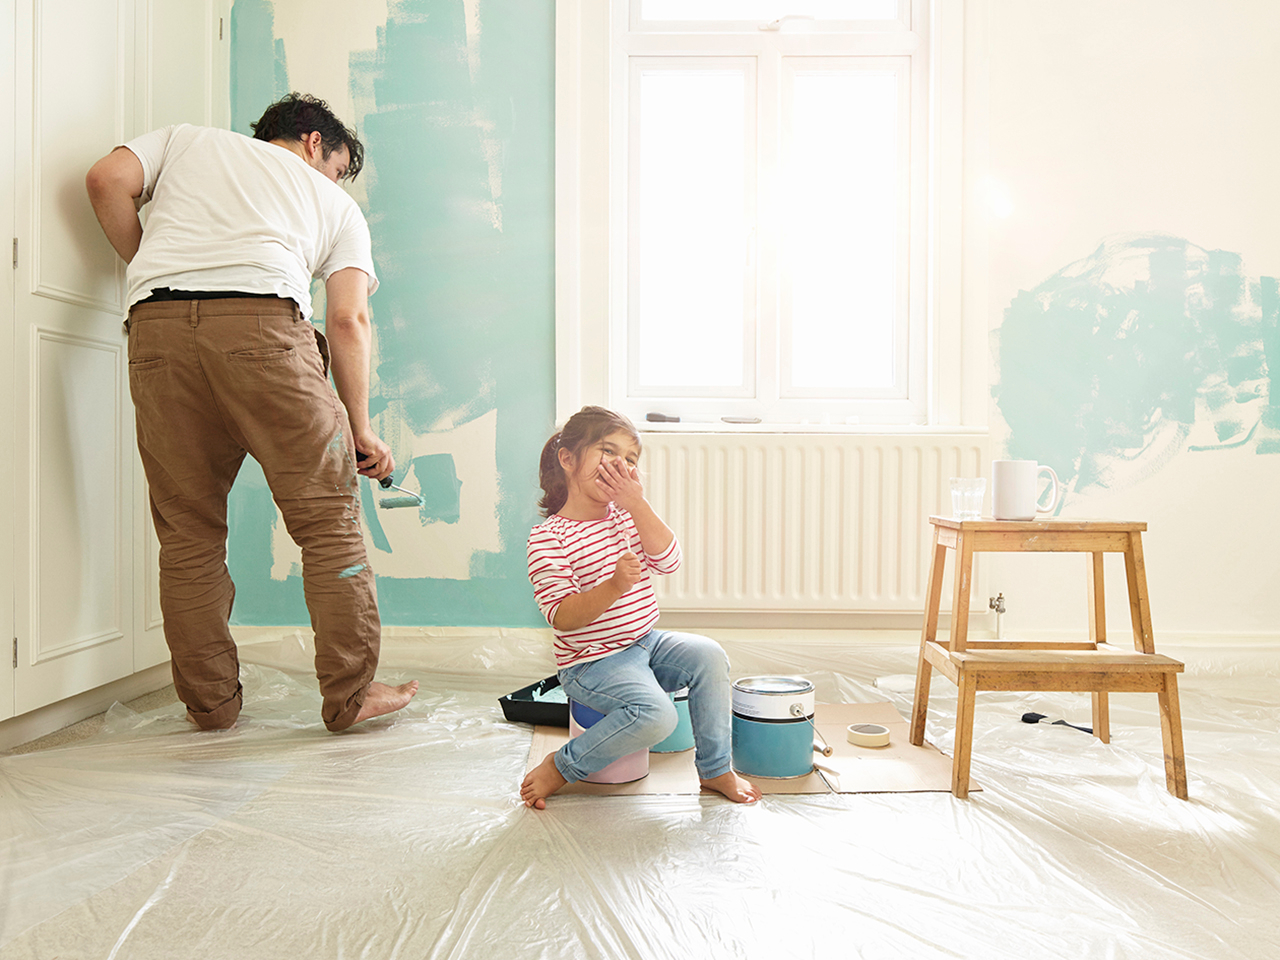 Daughter laughing while dad decorates wall in domestic home